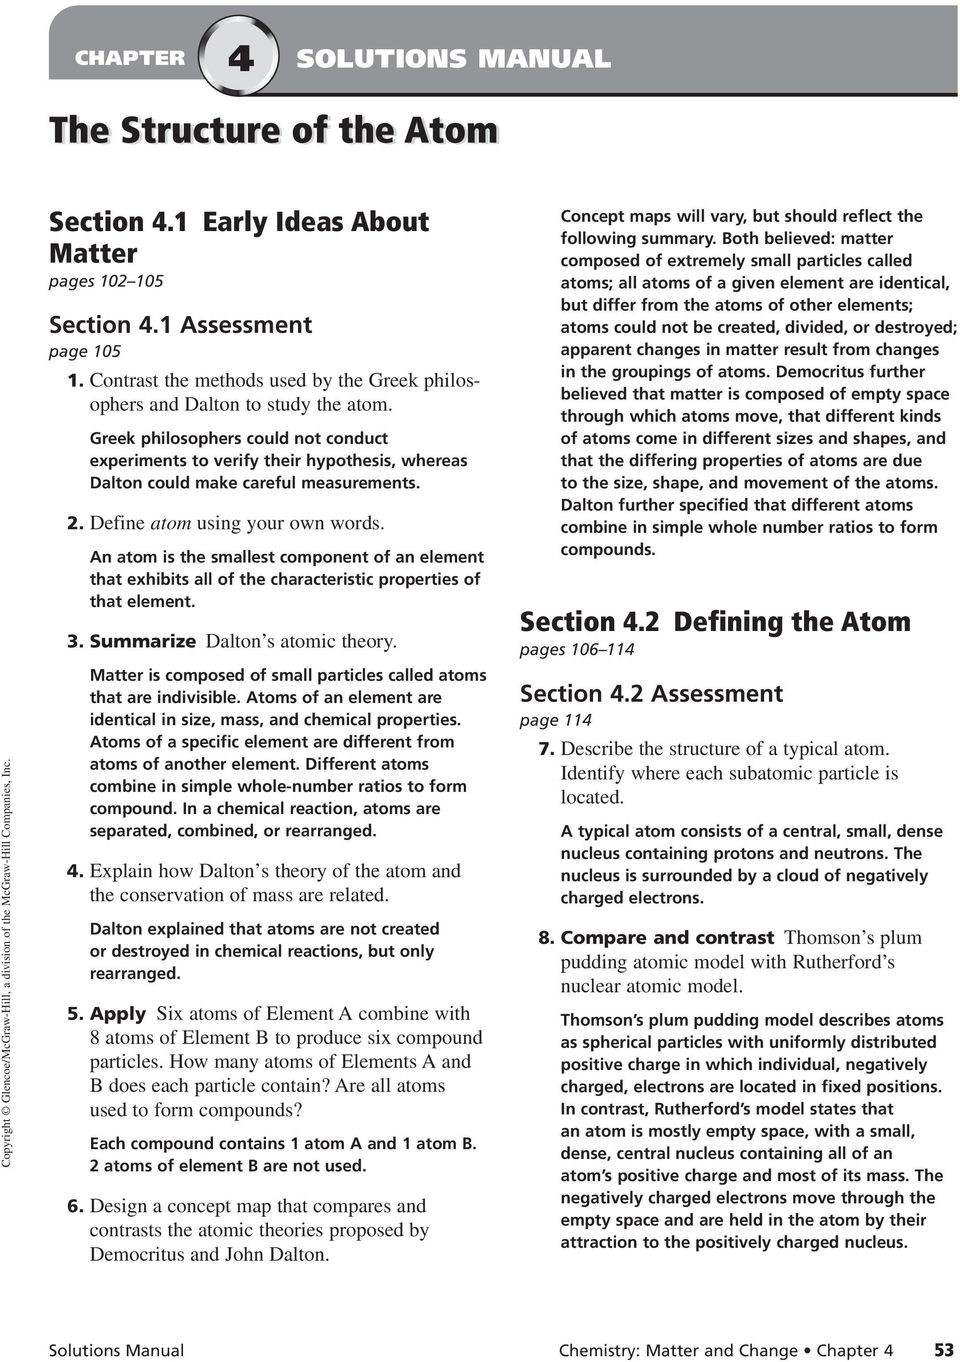 history of atom worksheet pdf